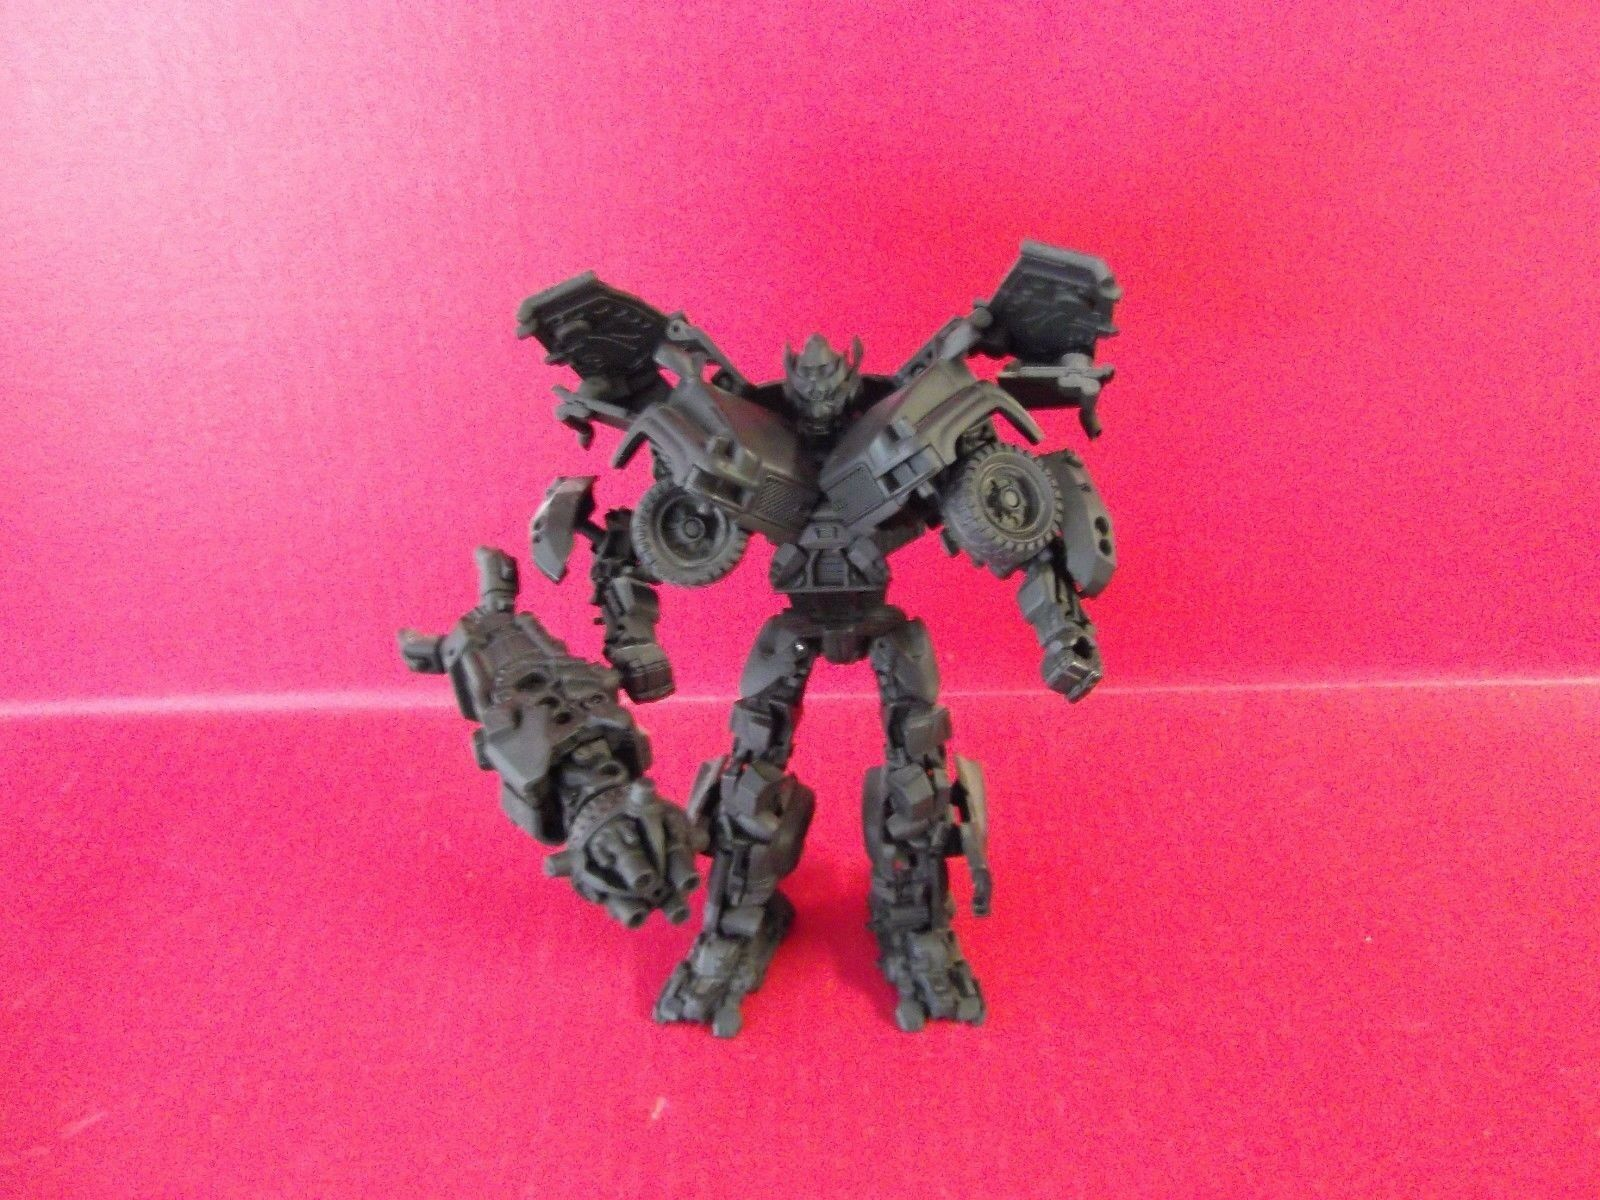 Primed Transformer Movie Voyager Class Autobot Ironhide Primed Ready To Repaint